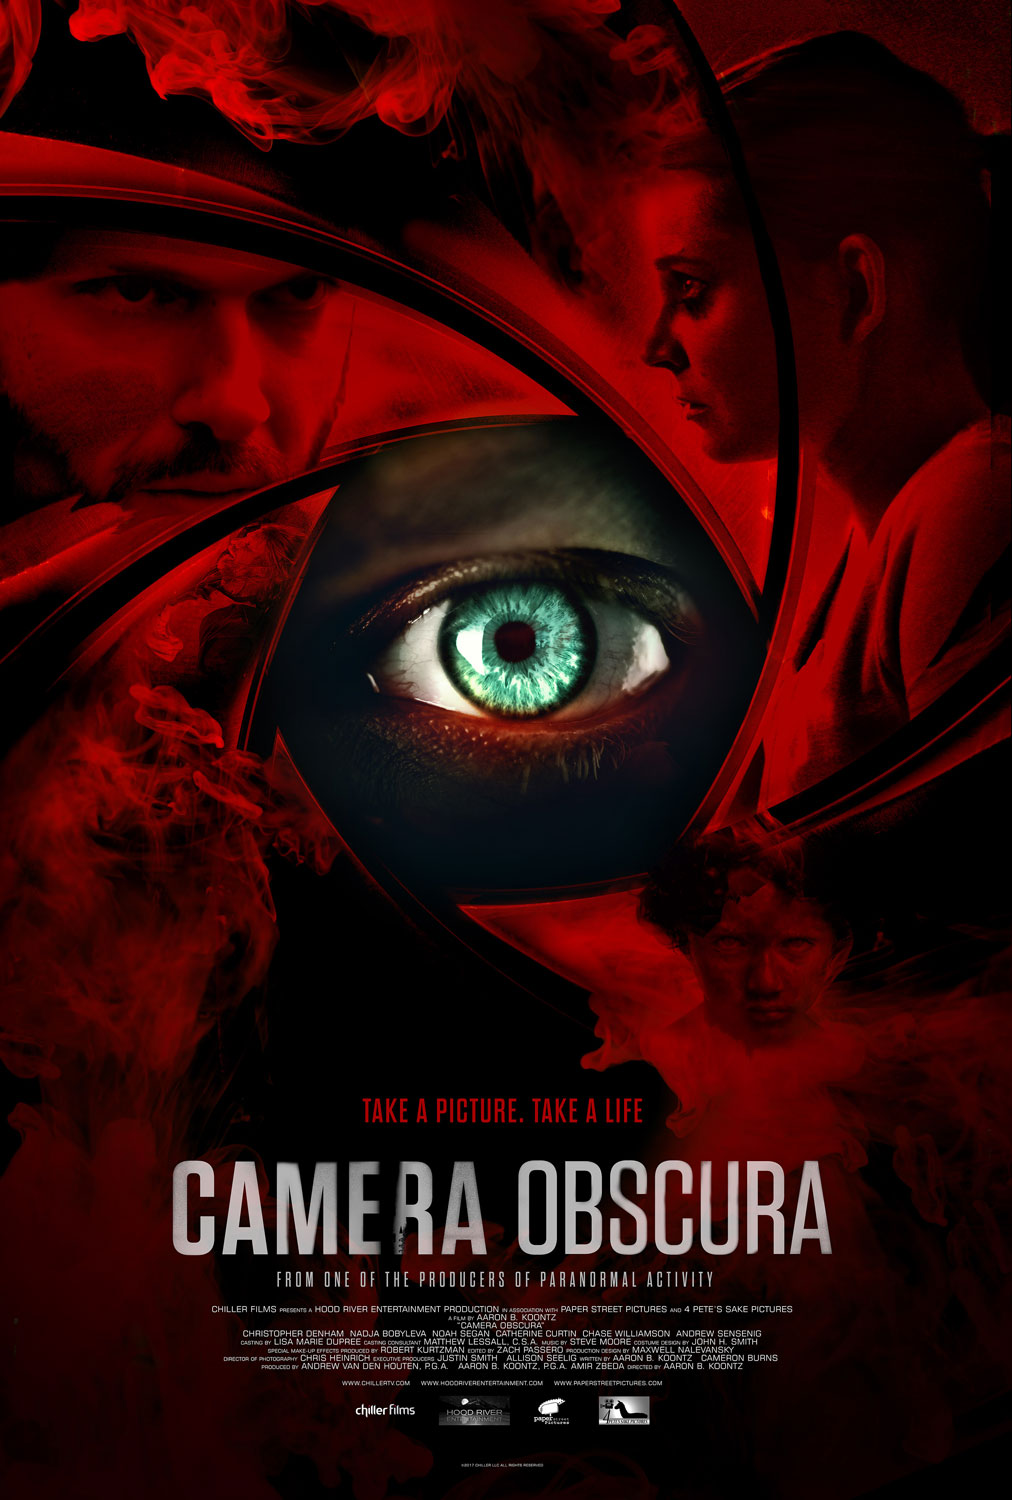 79thbroadway_camera_obscura_movie_poster.jpg